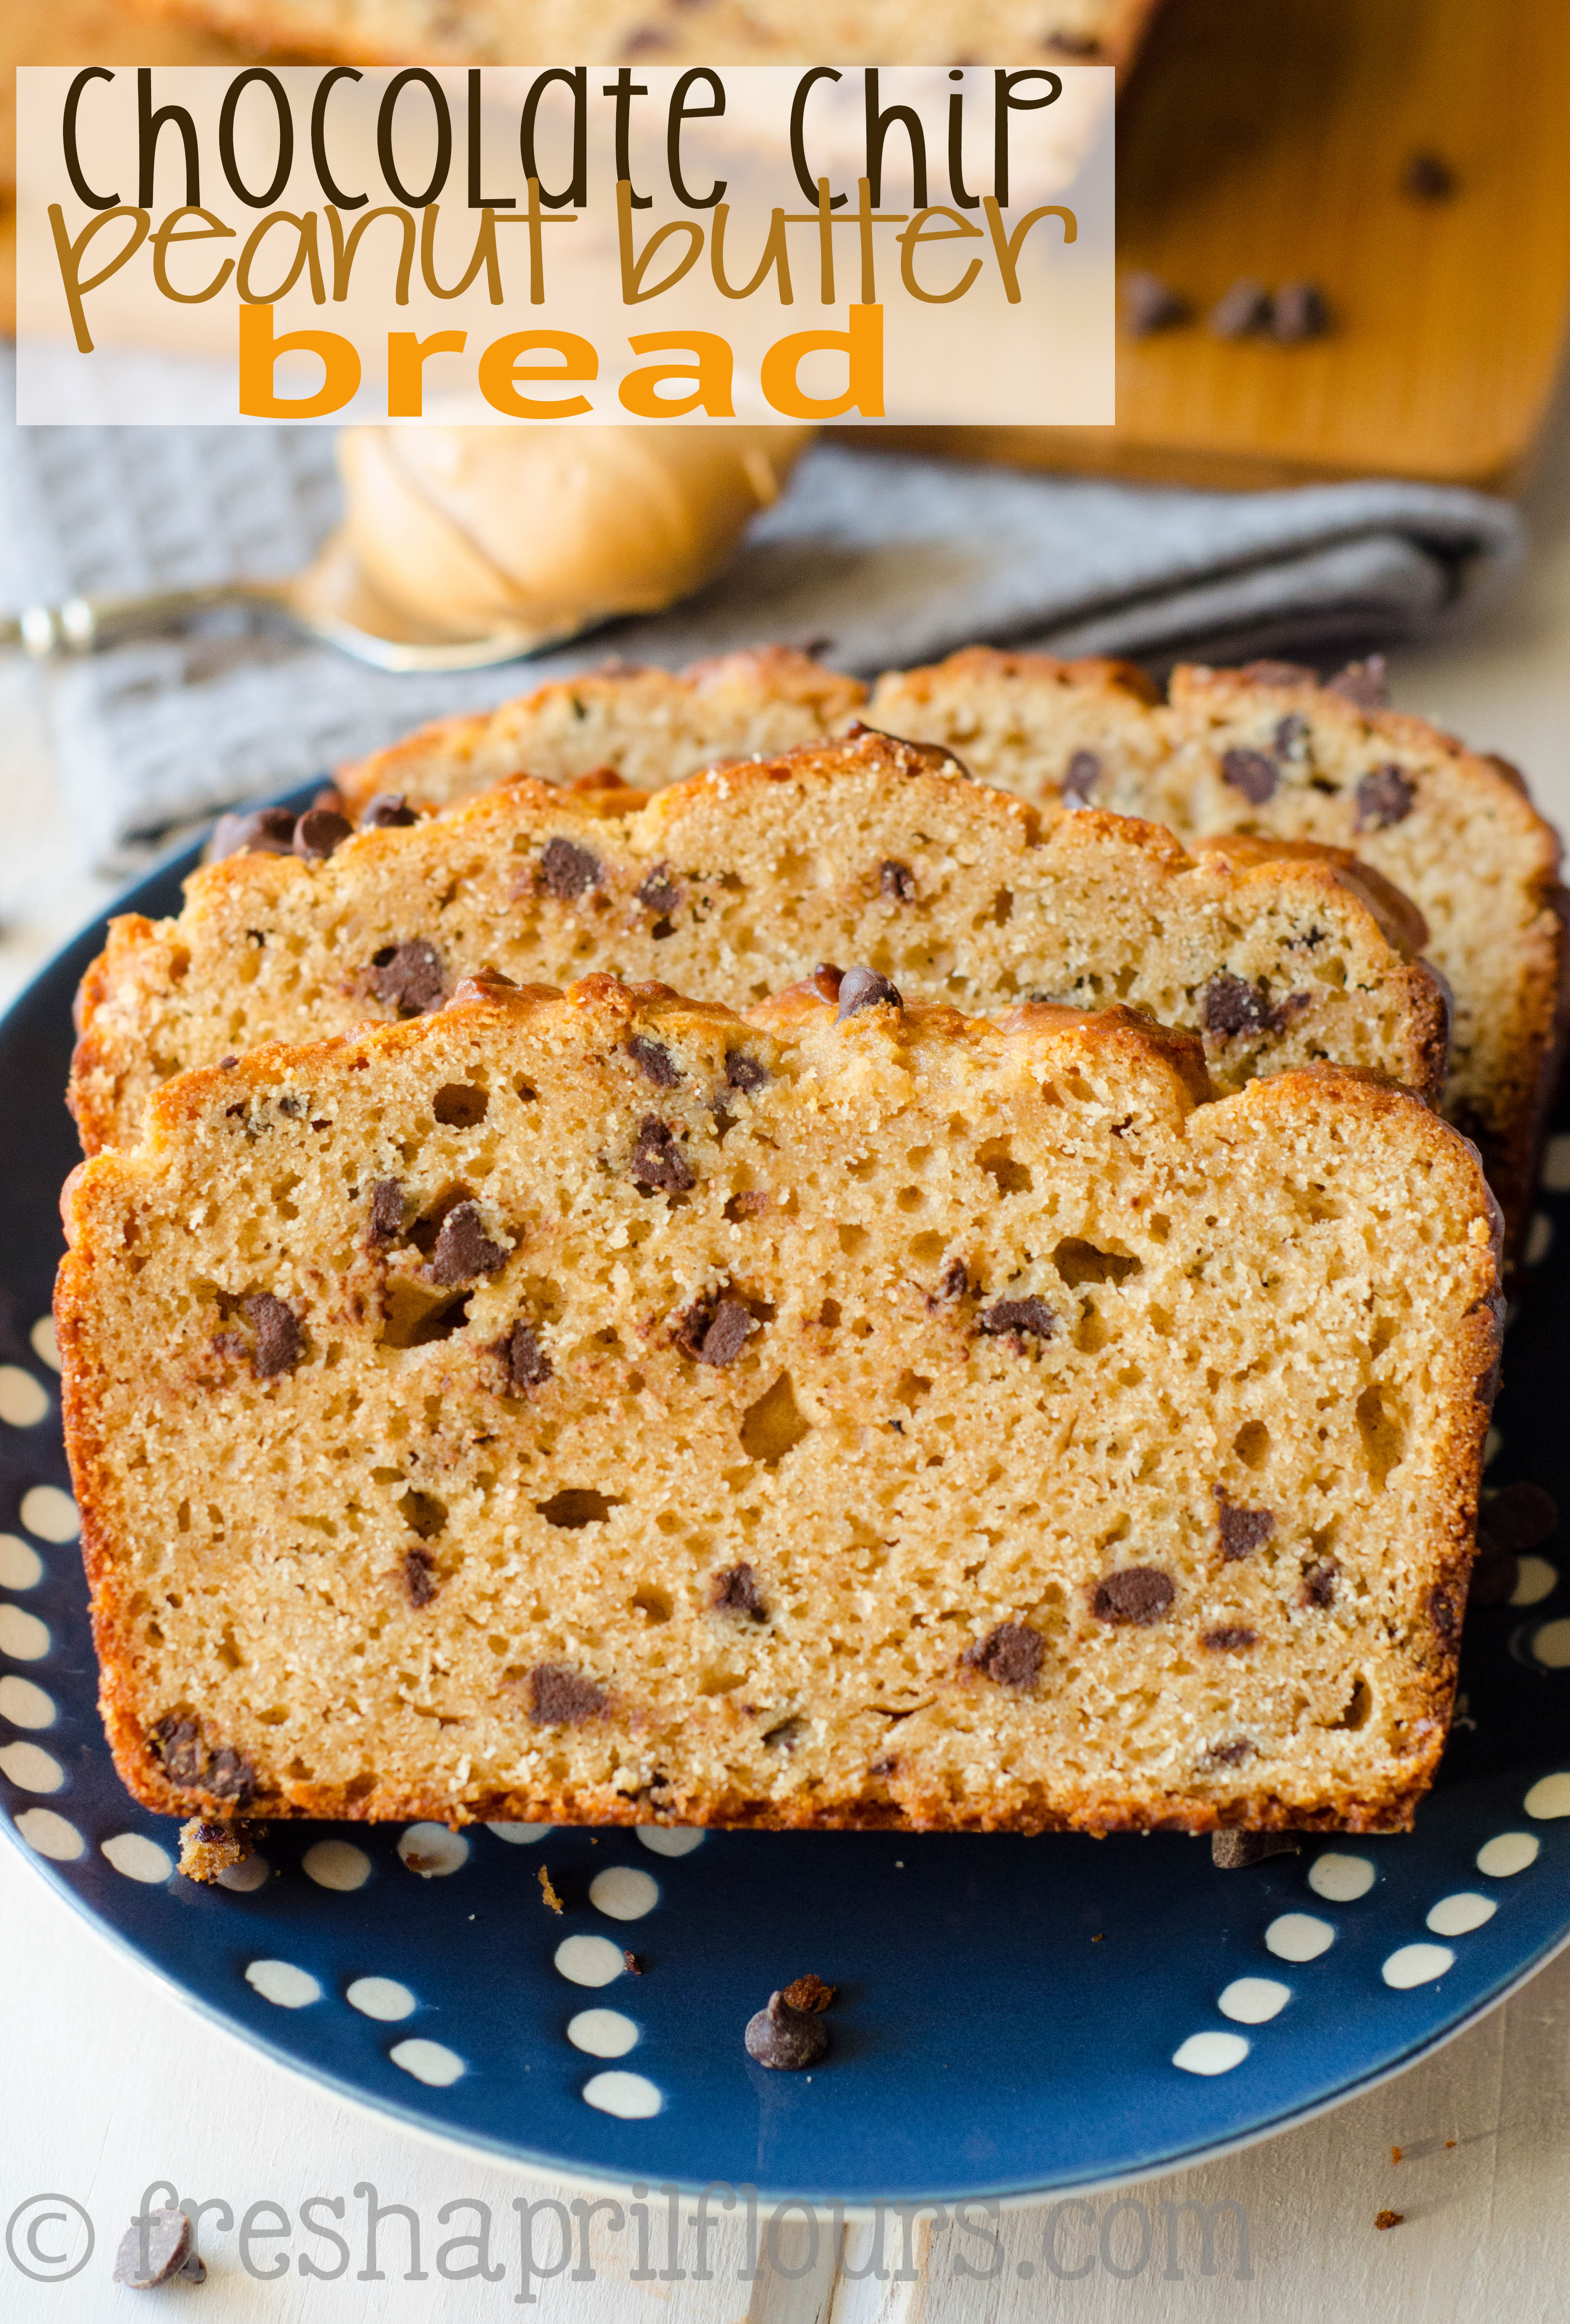 Chocolate Peanut Butter Bread: A crunchy exterior gives way to a moist and flavorful quick bread loaded with peanut butter and dotted with chocolate chips.